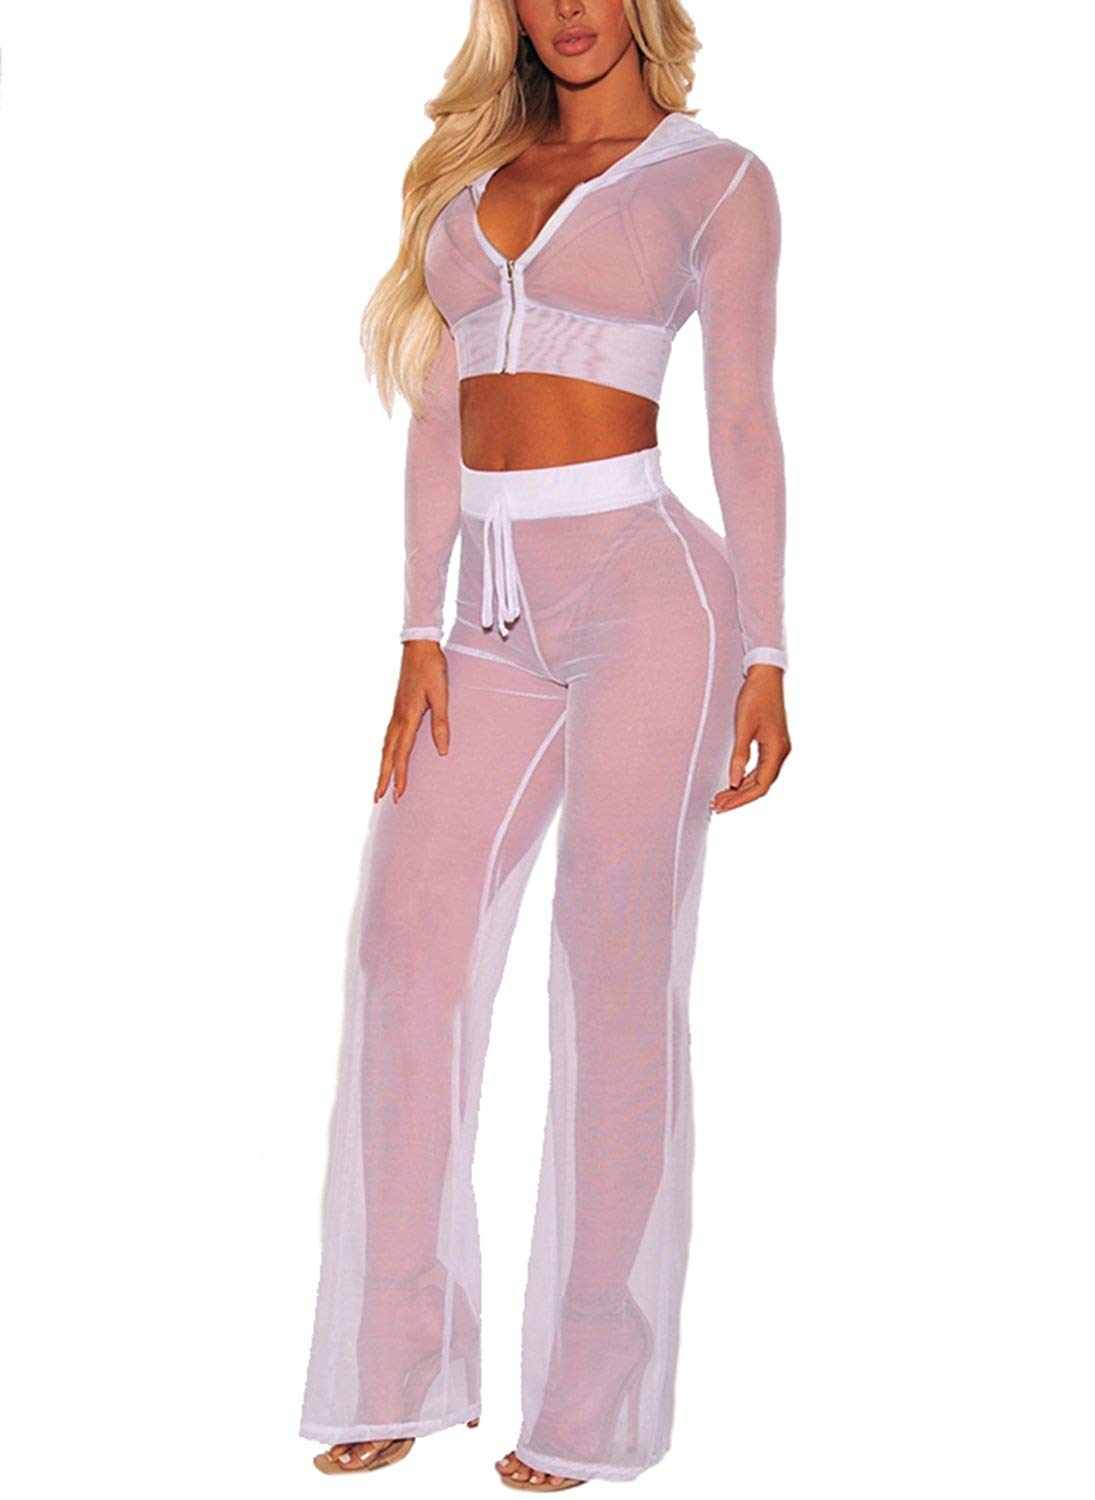 66a3dfc9d5 Get Quotations · Women See Through Sheer Mesh Hoodie Crop Tops and Legging  Pants Sexy 2pcs Bikini Swimsuit Cover